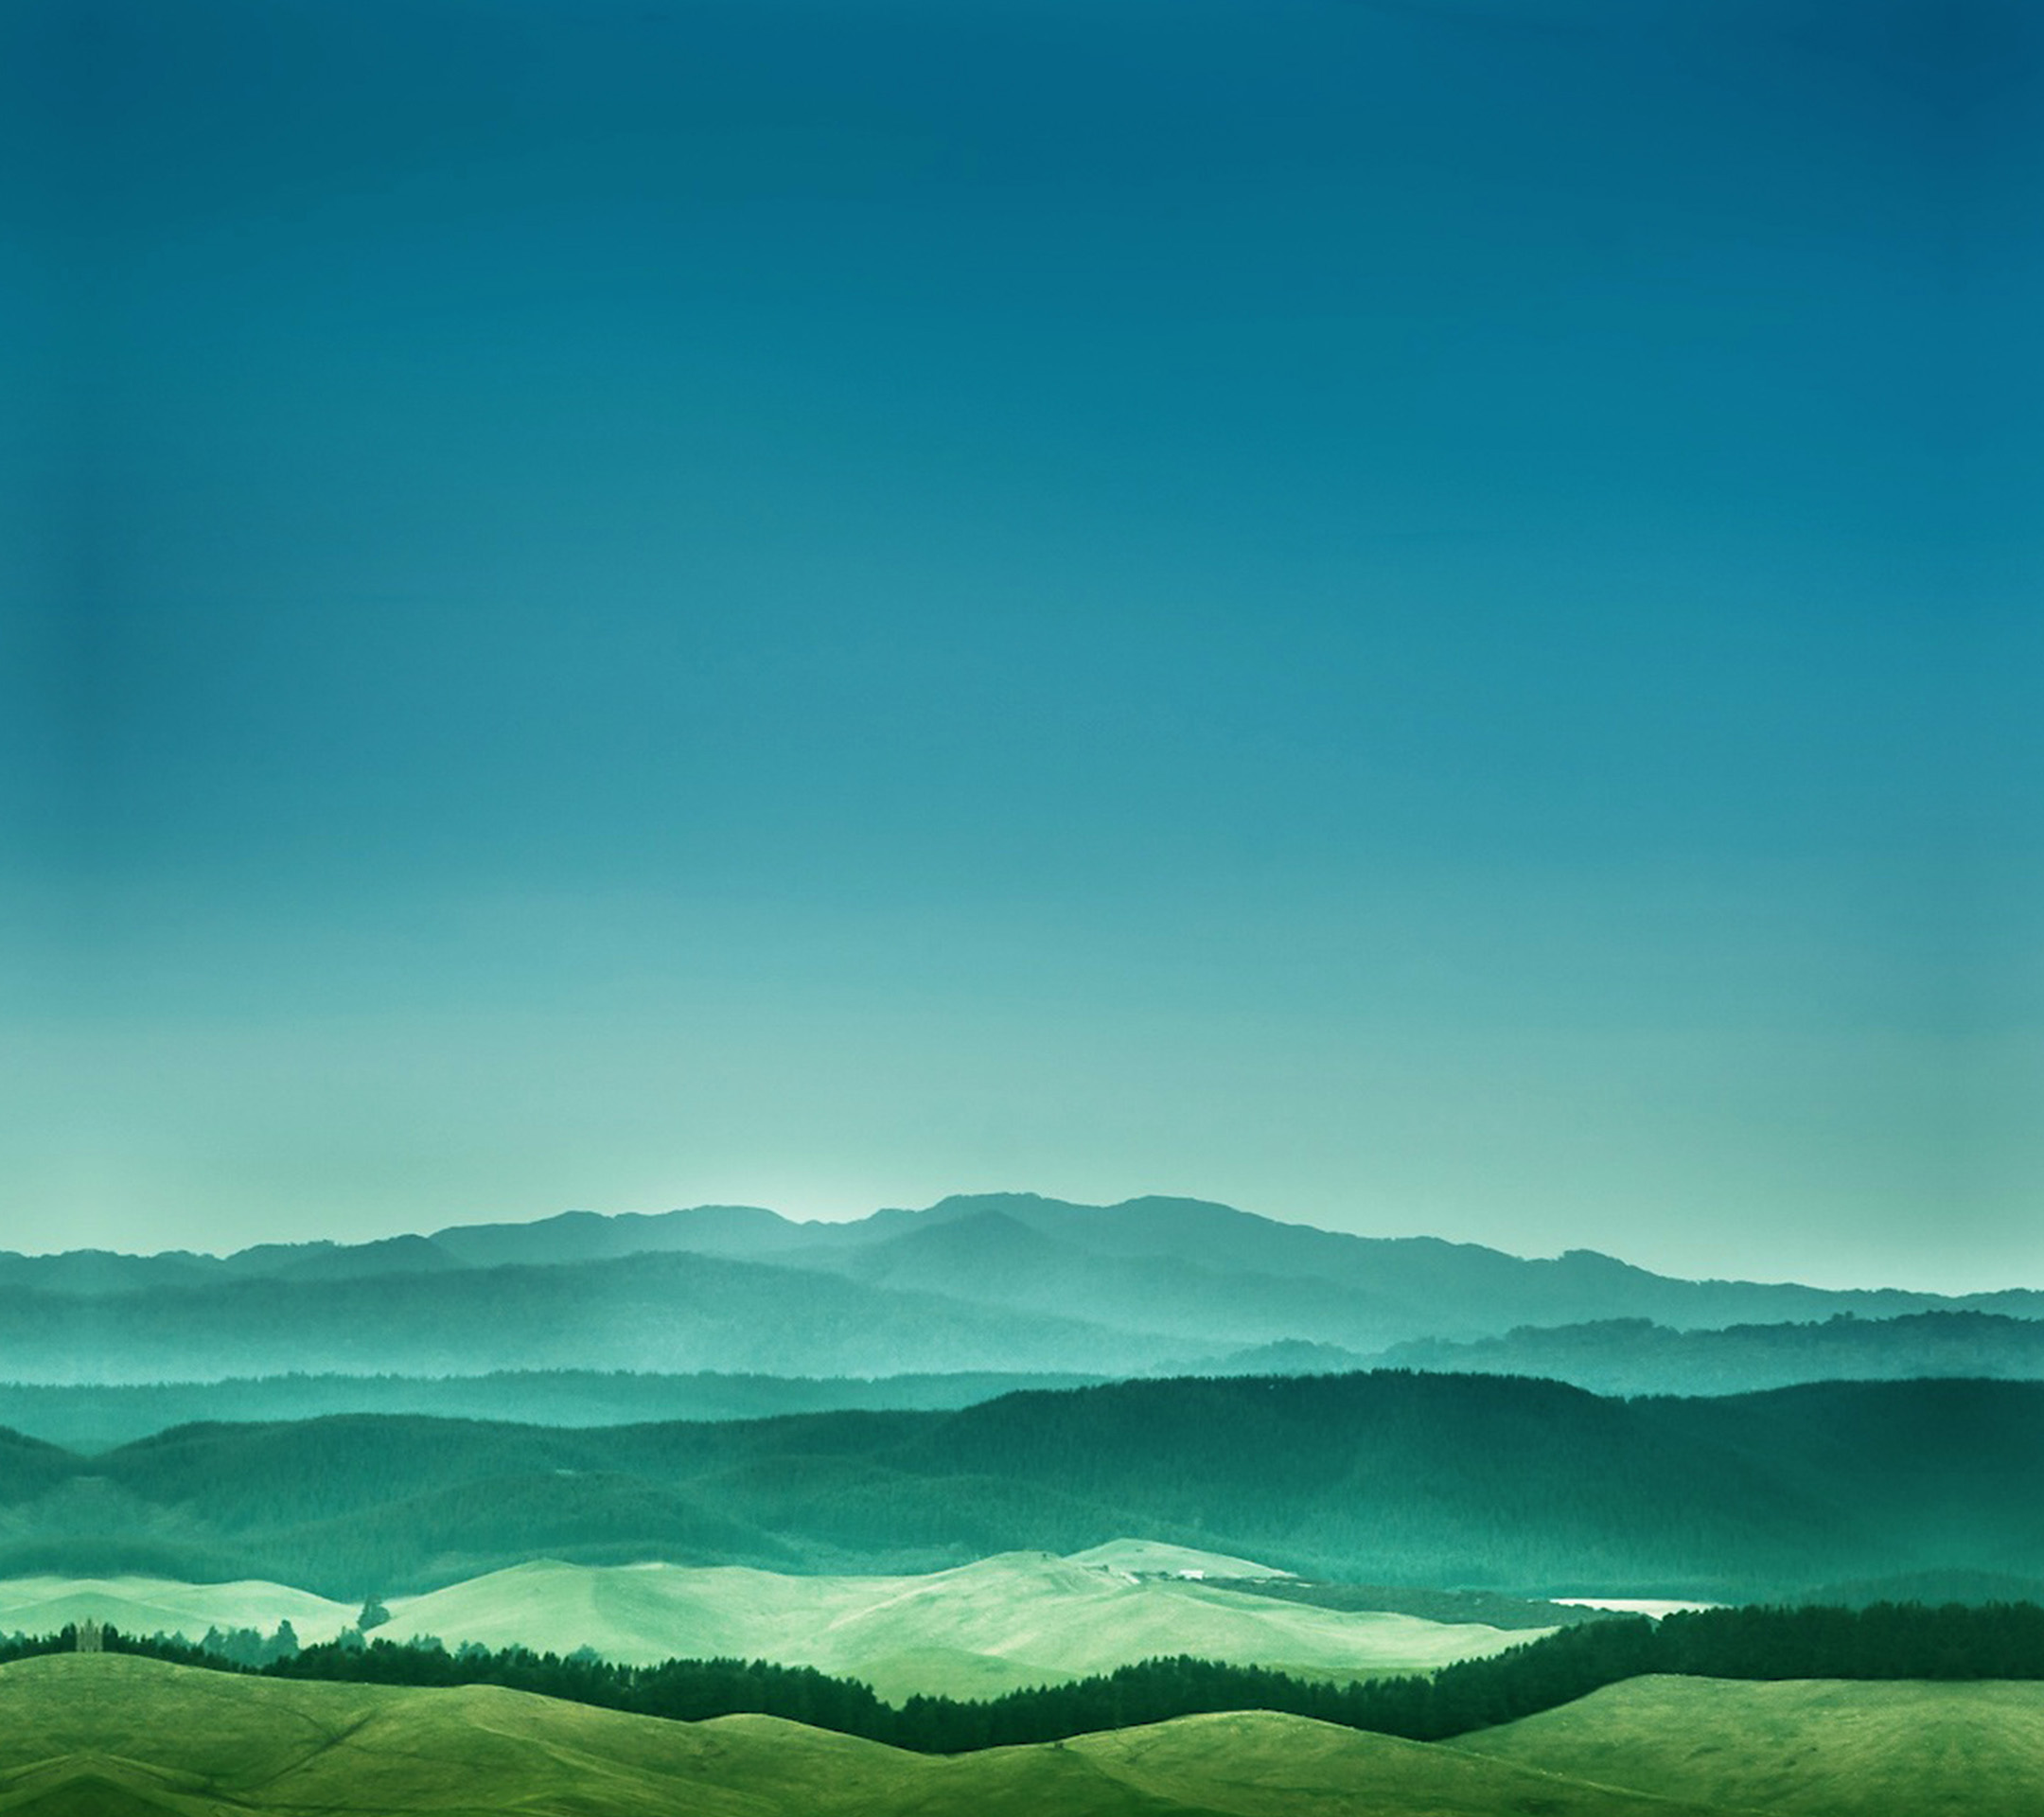 Htc One Wallpapers